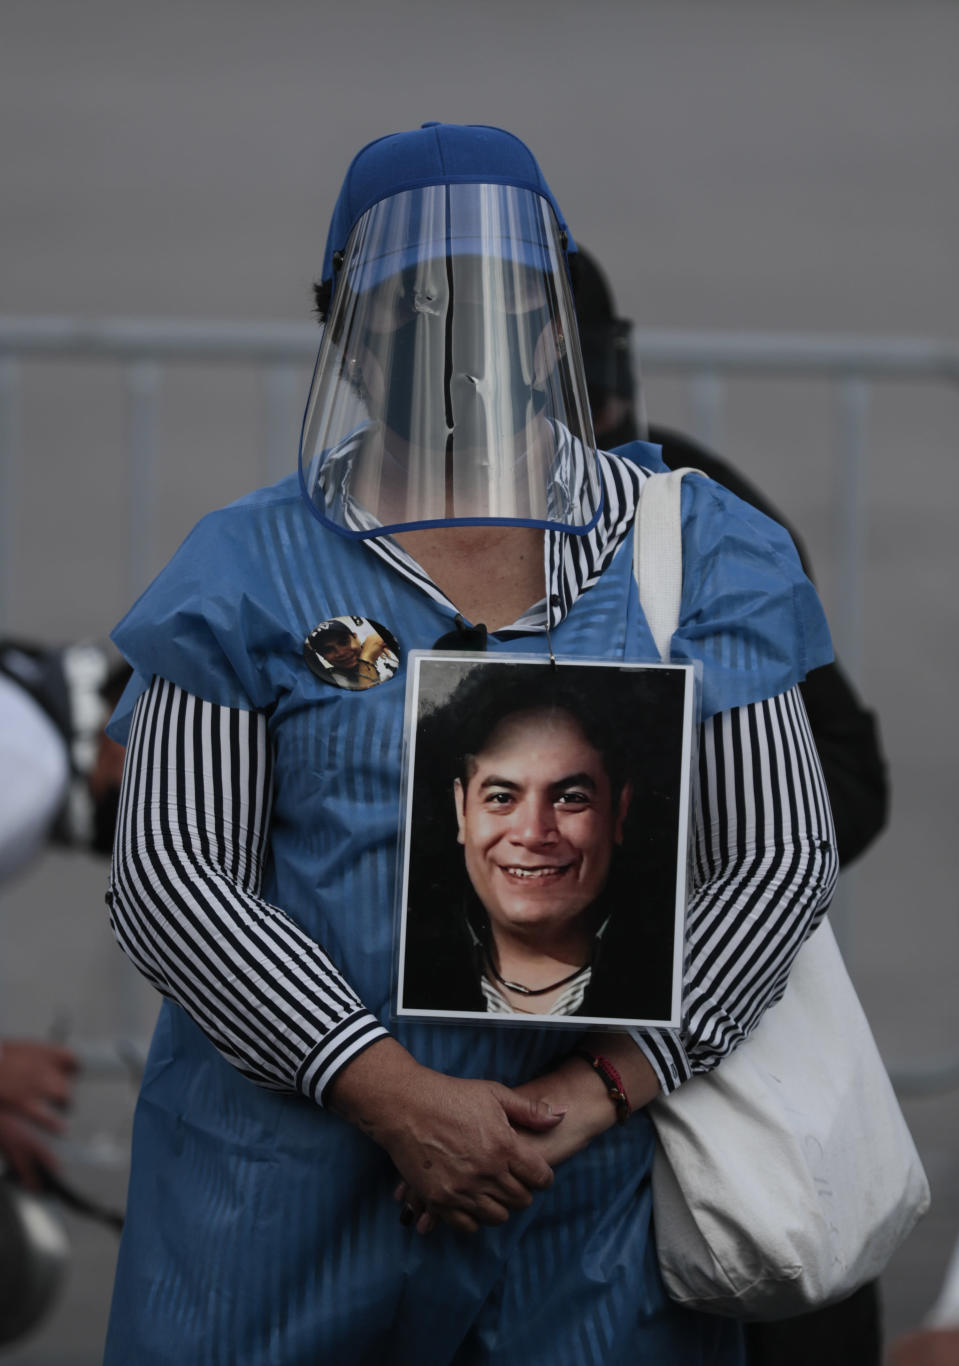 A woman wearing a mask amid the new coronavirus pandemic holds an image of a person who was disappeared, during a protest in front of the National Palace in Mexico City, Thursday, June 4, 2020. Relatives of different groups searching for the disappeared protested the cut to the budget destined for their search. (AP Photo/Eduardo Verdugo)